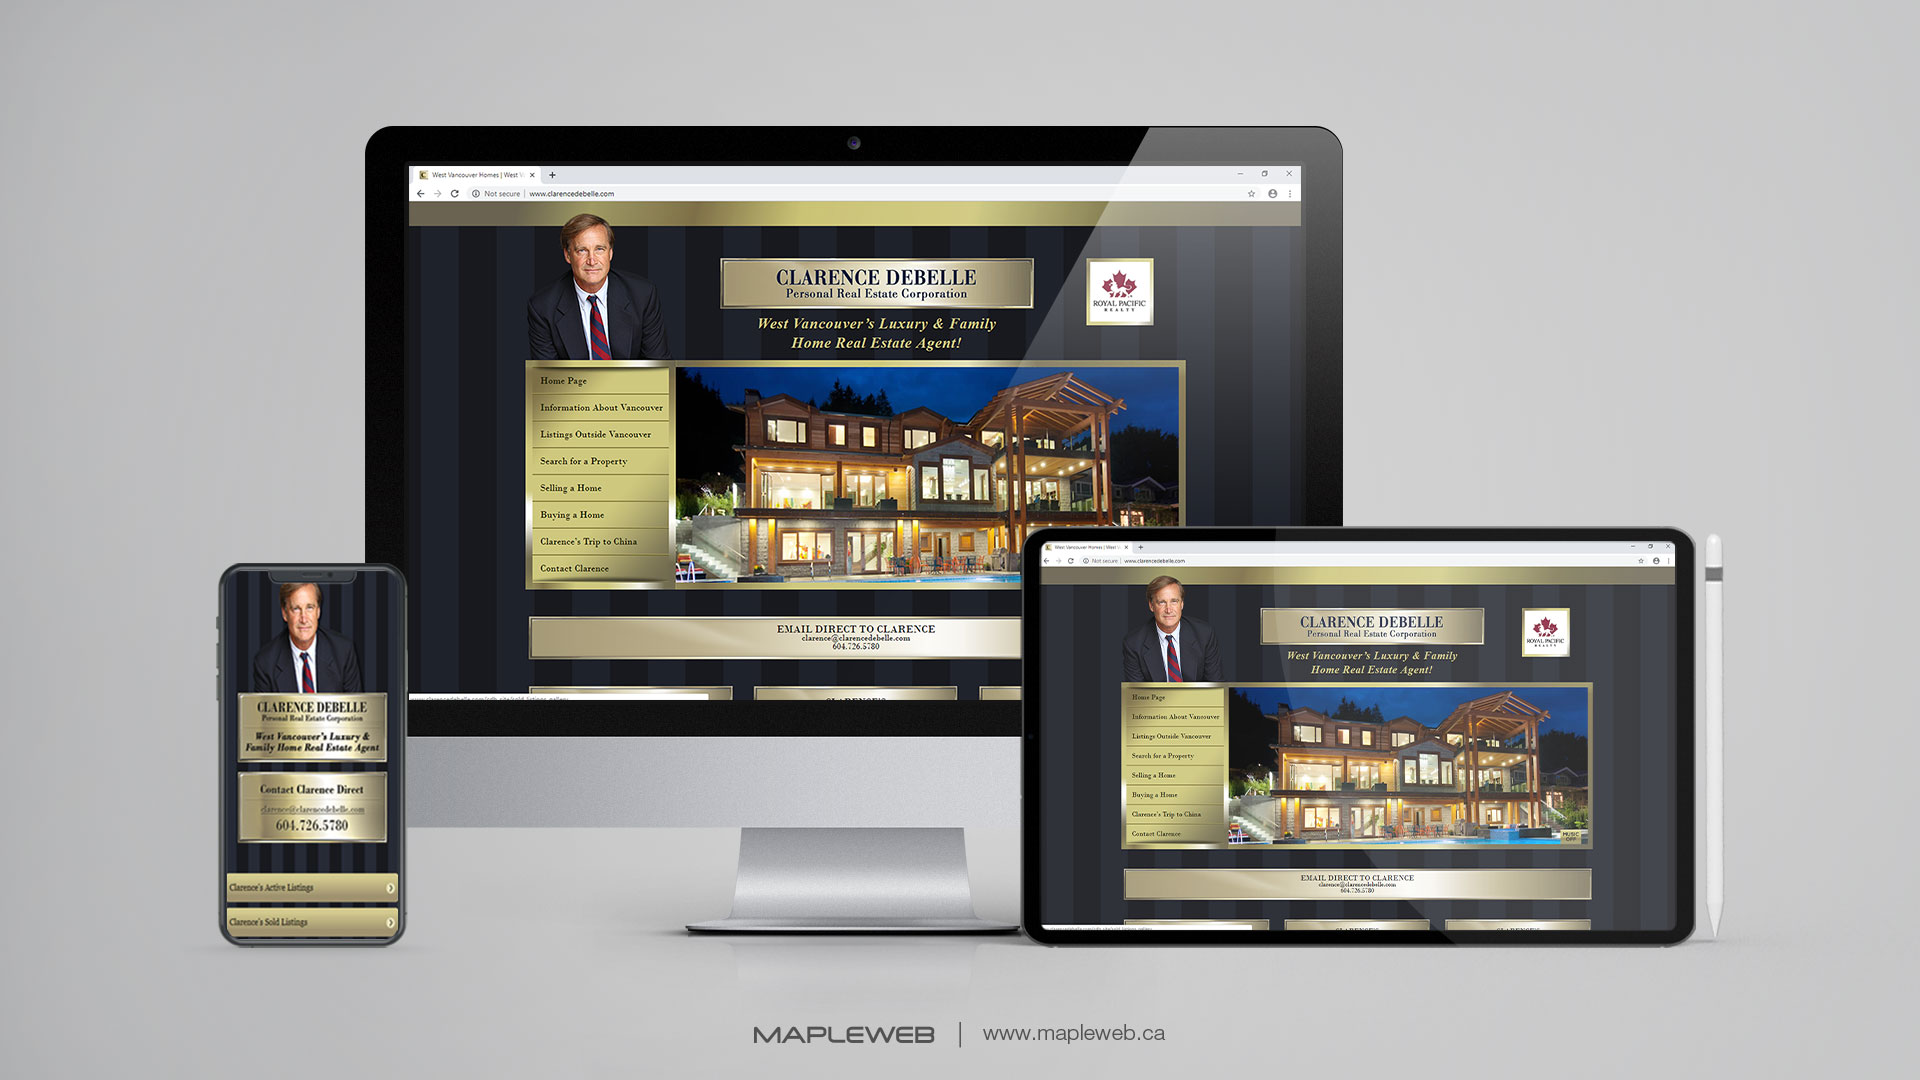 clarence-debelle-Vancouver-web-design-Vancouver-web-development-by-mapleweb-canada-multiple-devices-display